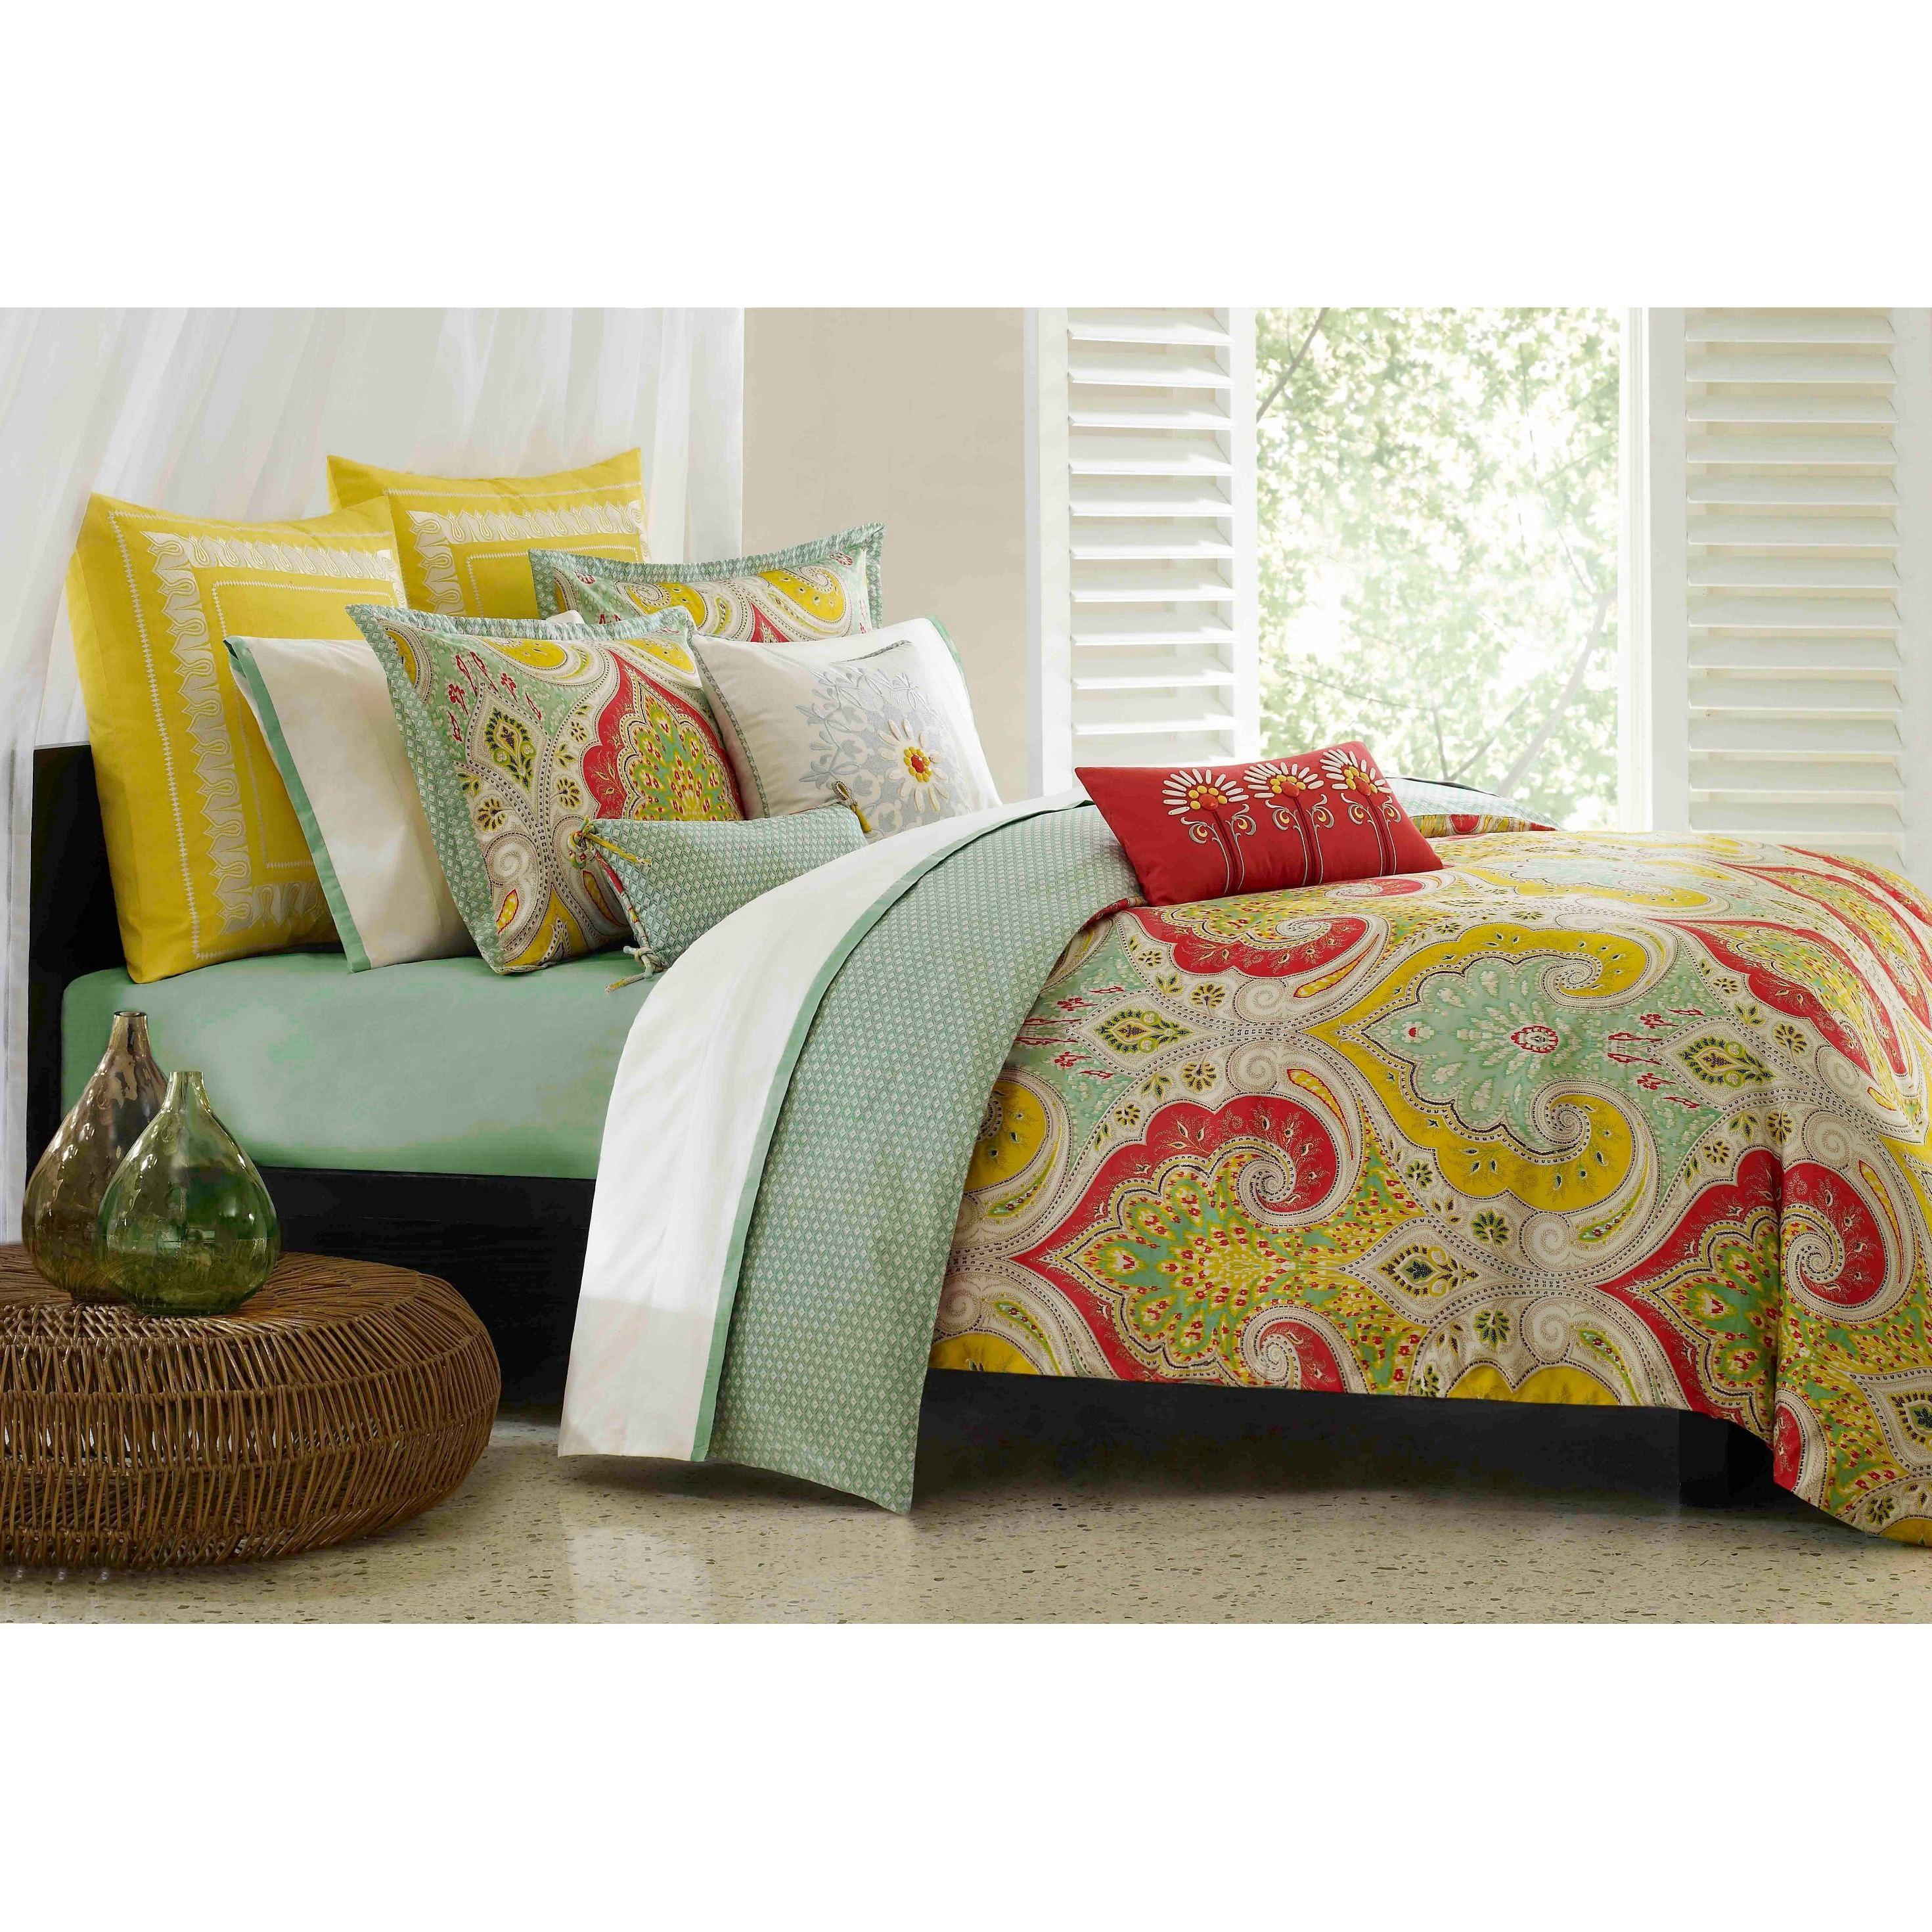 Add A Splash Of Color In Your Bedroom With This Bold And Beautiful Paisley  Bedding Collection · Master RoomDuvet Cover ... Photo Gallery